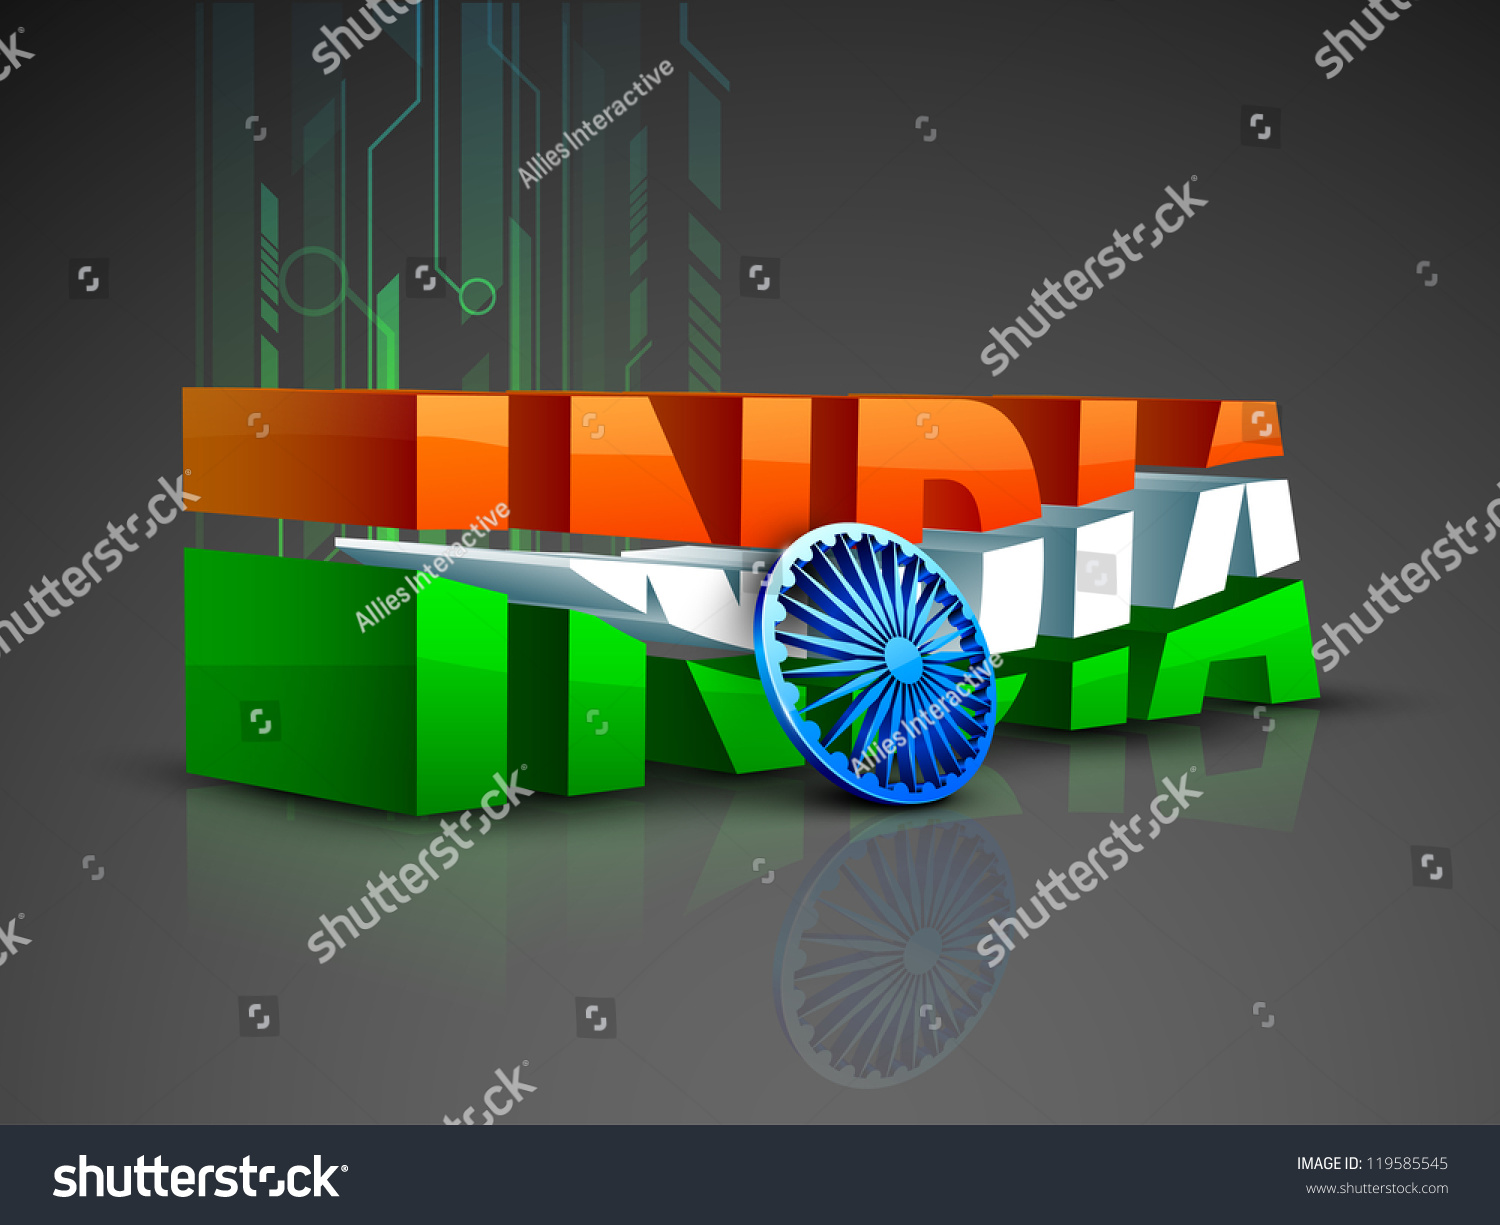 Image result for indian national flag images